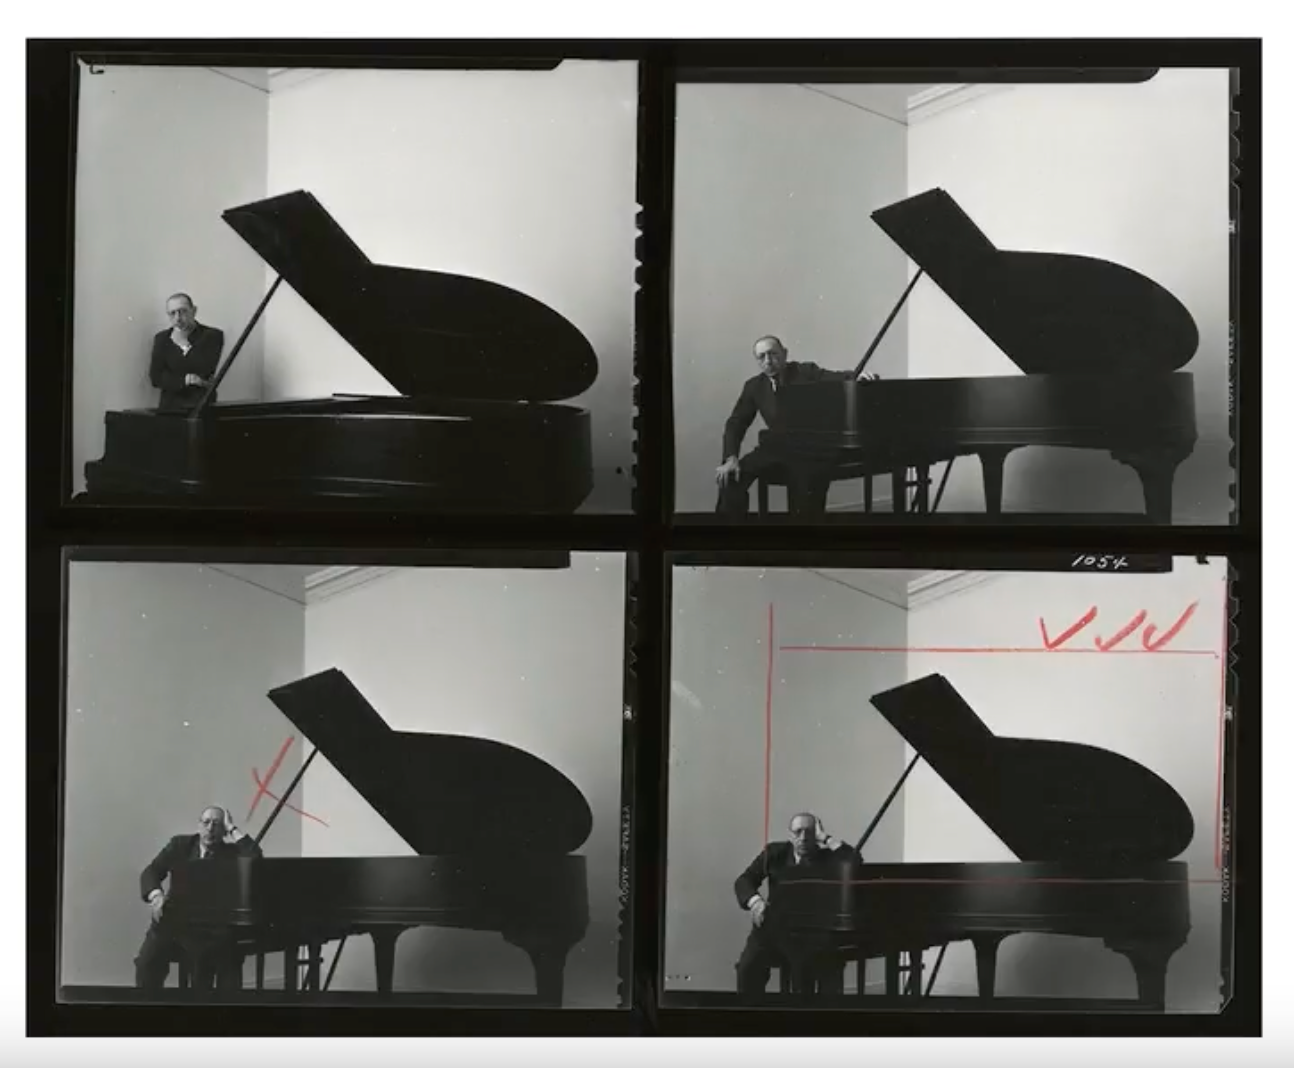 Contact sheet from Newman's portraits of Igor Stravinsky.